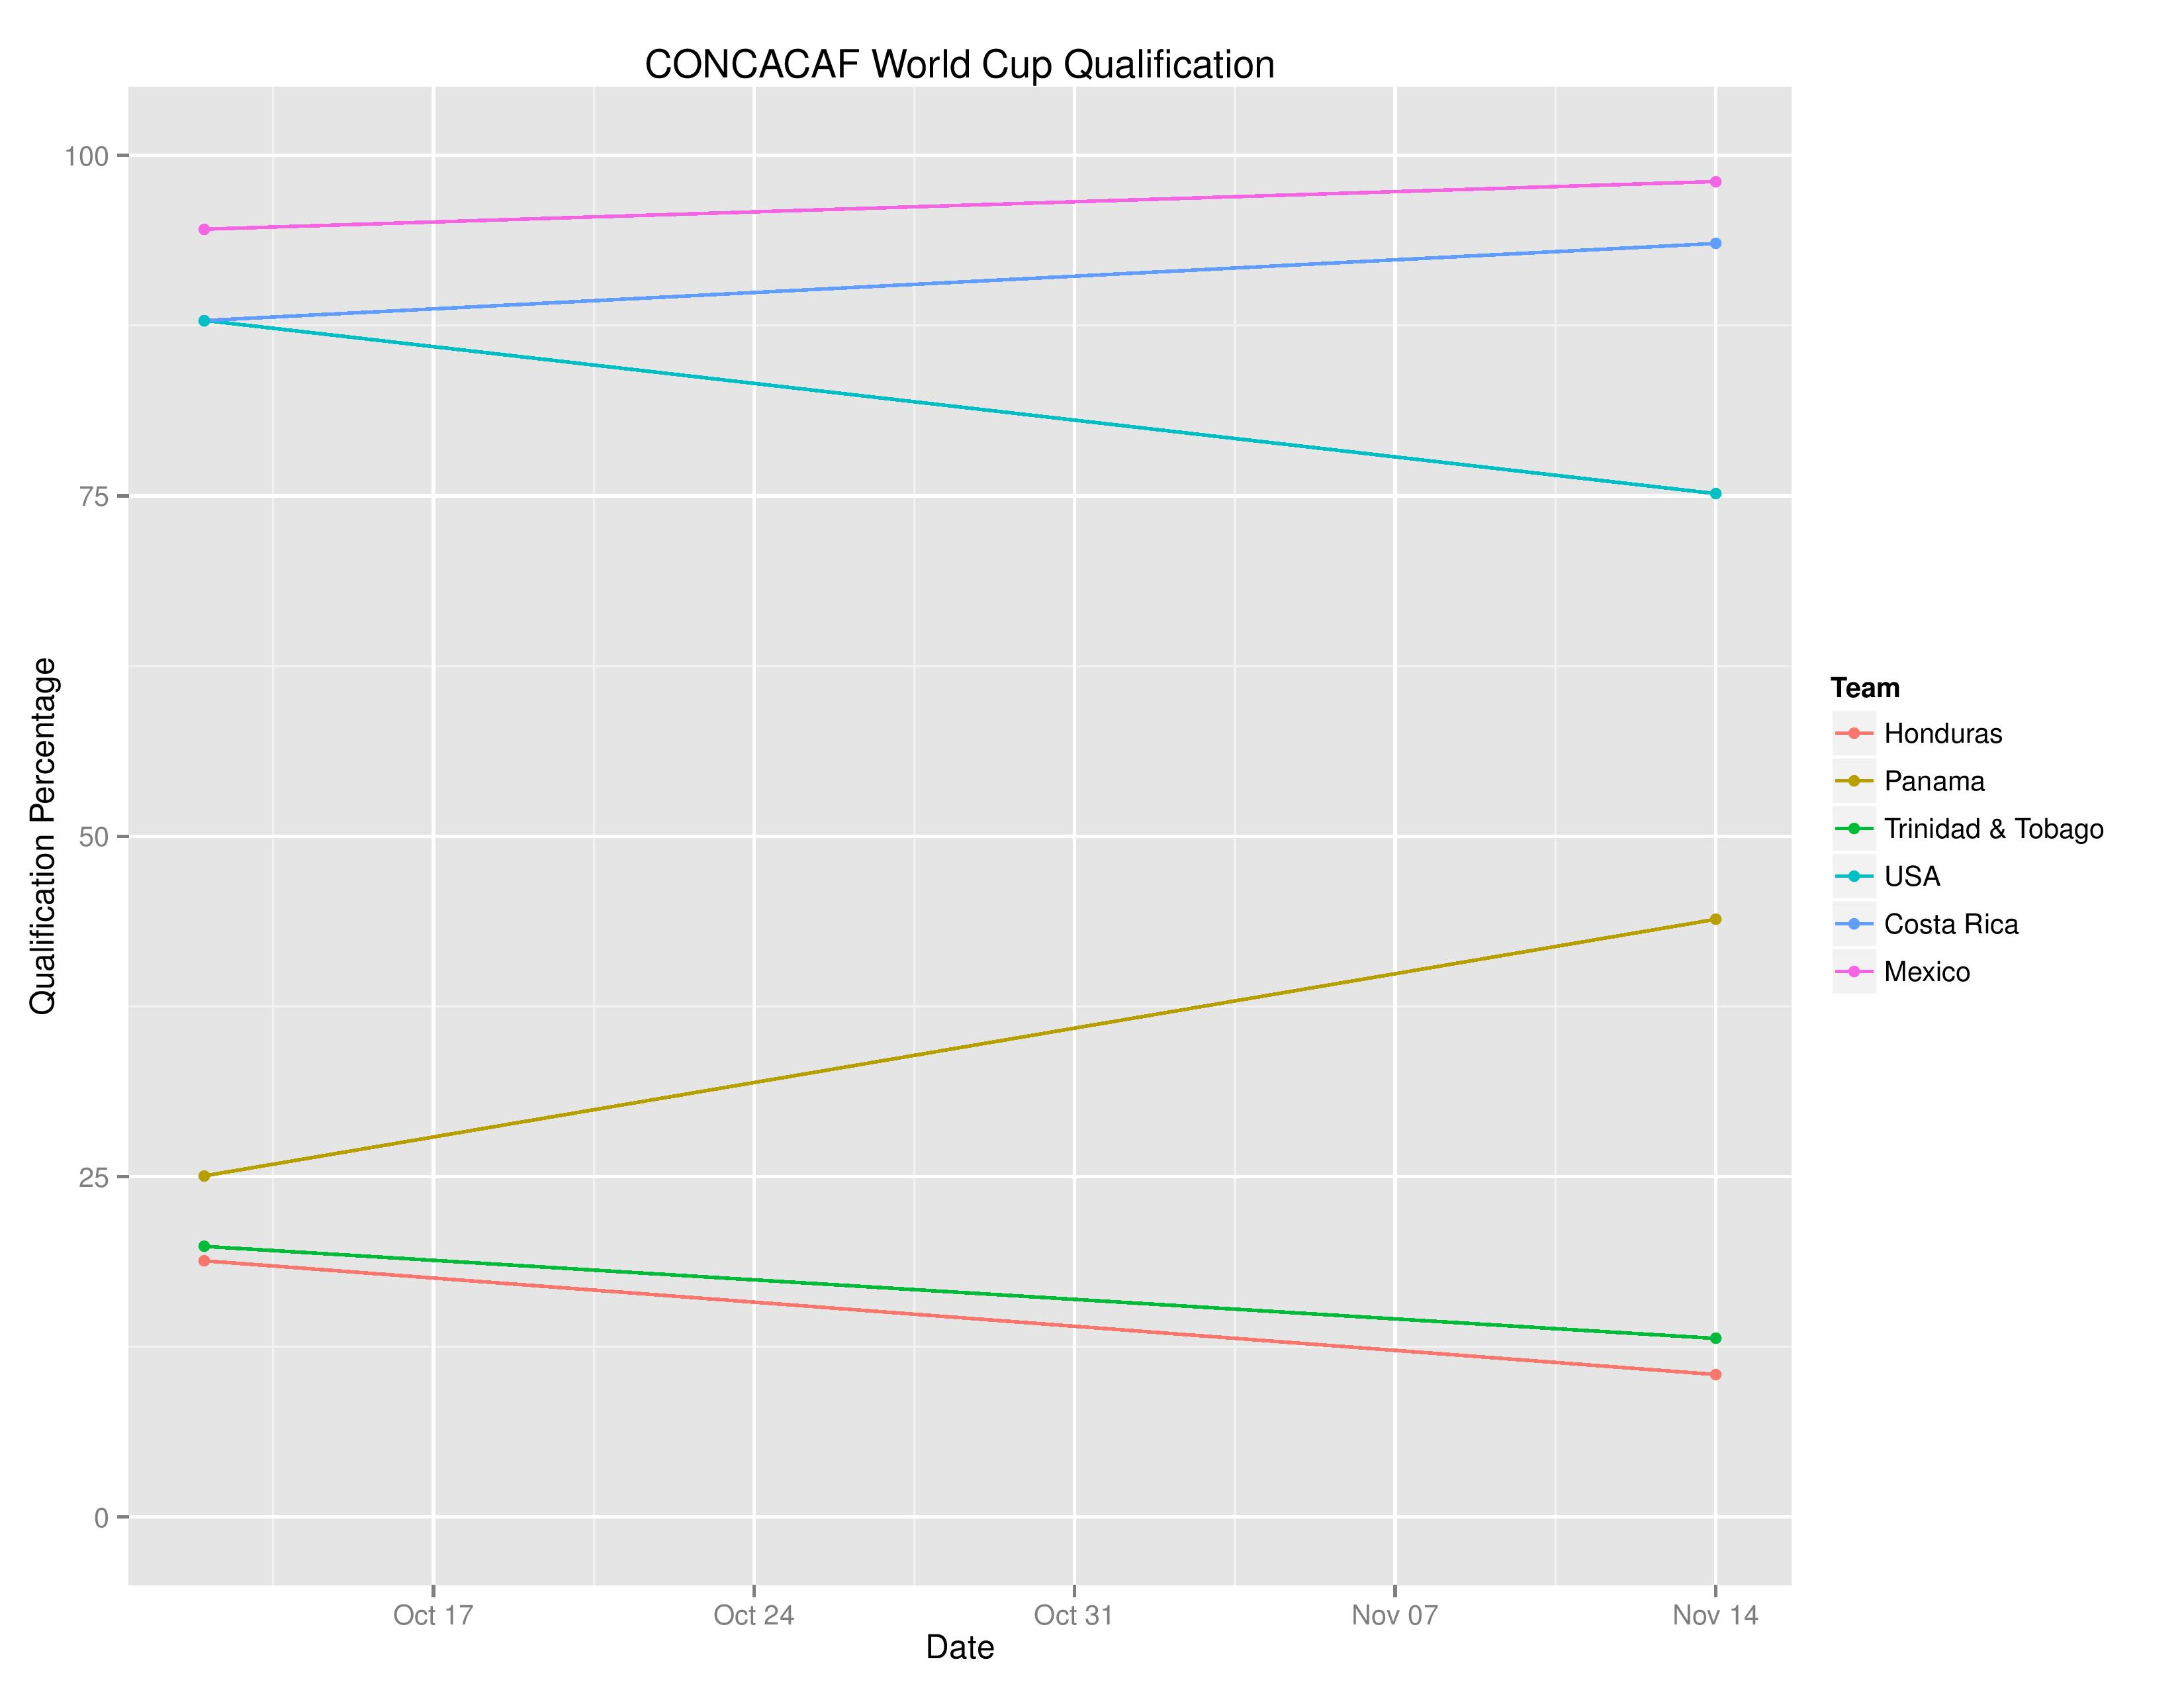 worldcupqualification_graphs2016-11-14-page-006